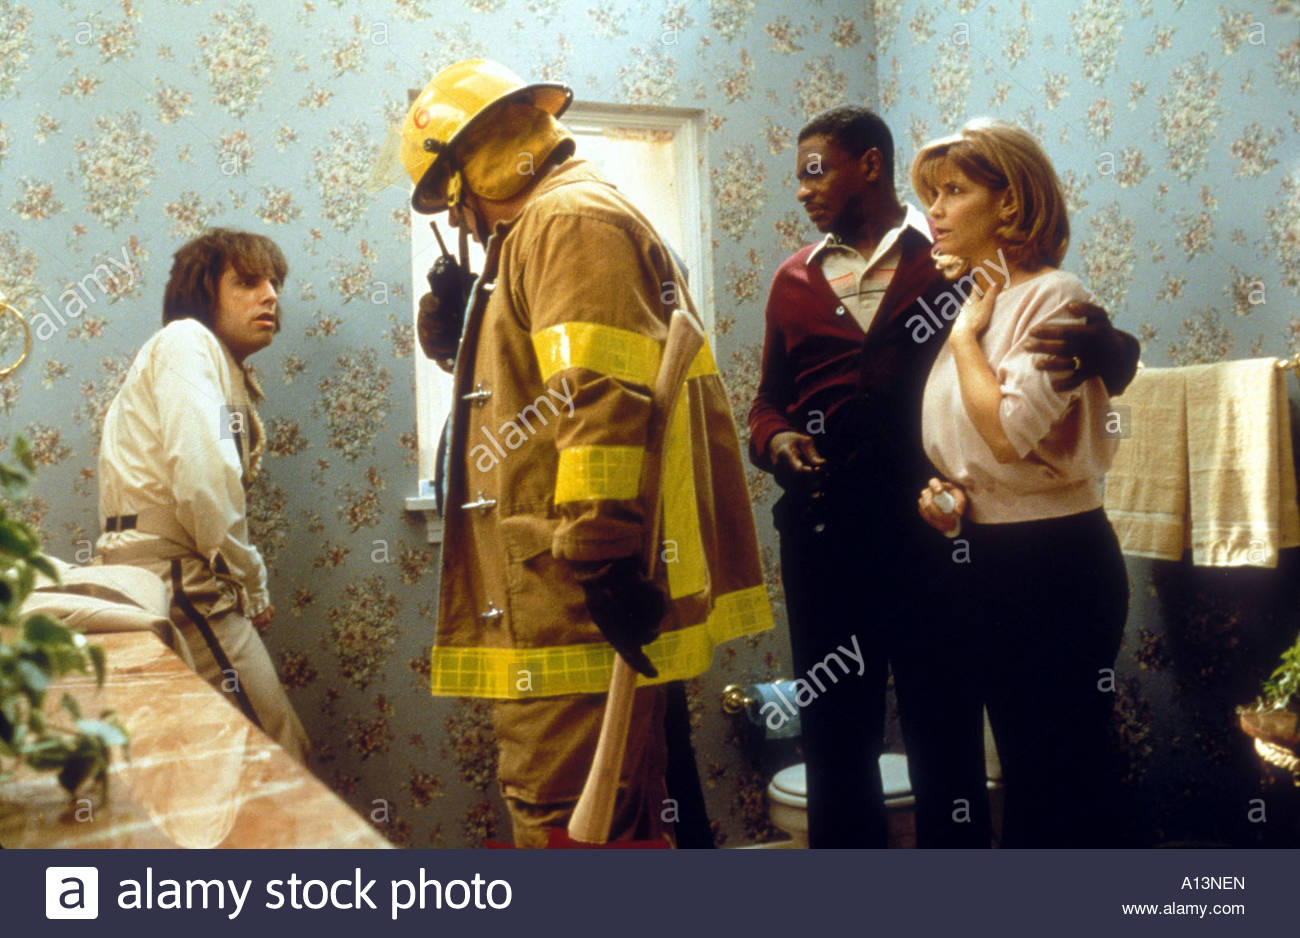 There s Something About Mary Year 1998 Directors Bobby and Peter Farrelly Keith David Ben Stiller Markie Post - Stock Image